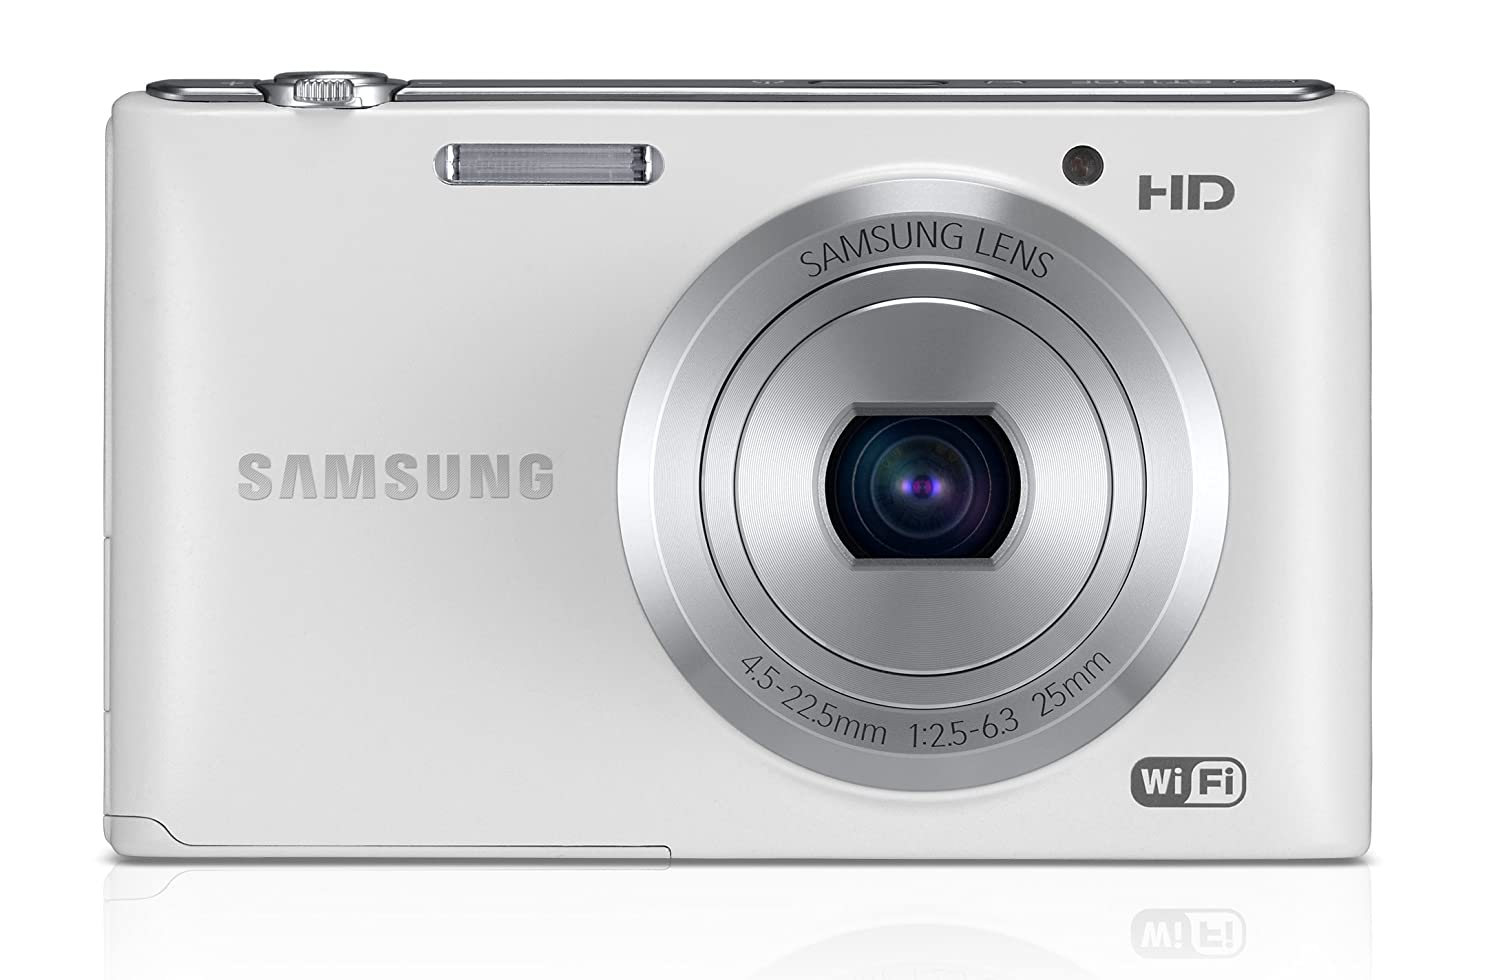 Samsung ST150F Smart Camera 2.0 with Built-In Wi-Fi: Amazon.co.uk ...